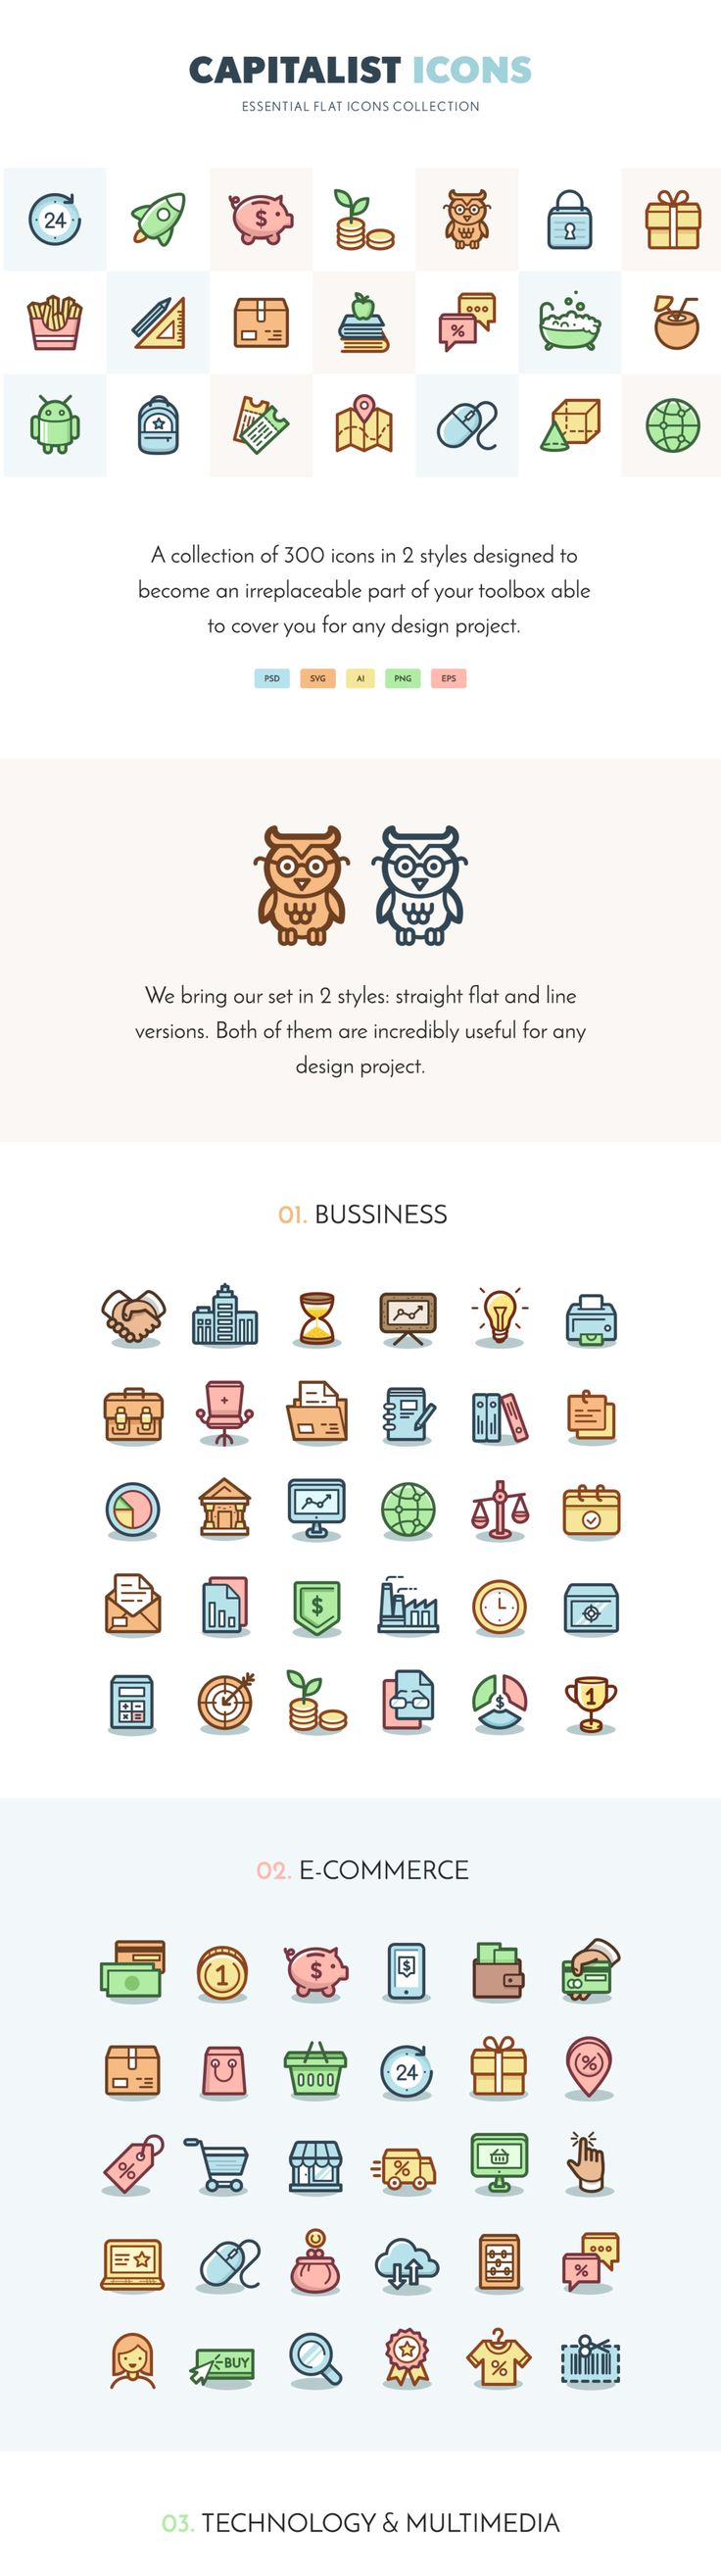 Meet the Capitalist Icon Set, a collection of 600 icons (300 x2 styles) with an original look and start-up spirit! It is designed to become an irreplaceable part of your toolbox able to cover you for any design project.  These vivid icons across 10 categories will provide you with the necessary variety to cover you for any design project. To make sure of it, we brought the icons in two unique visual styles. Each icon in this set is a polished, high-quality illustration created with passion…